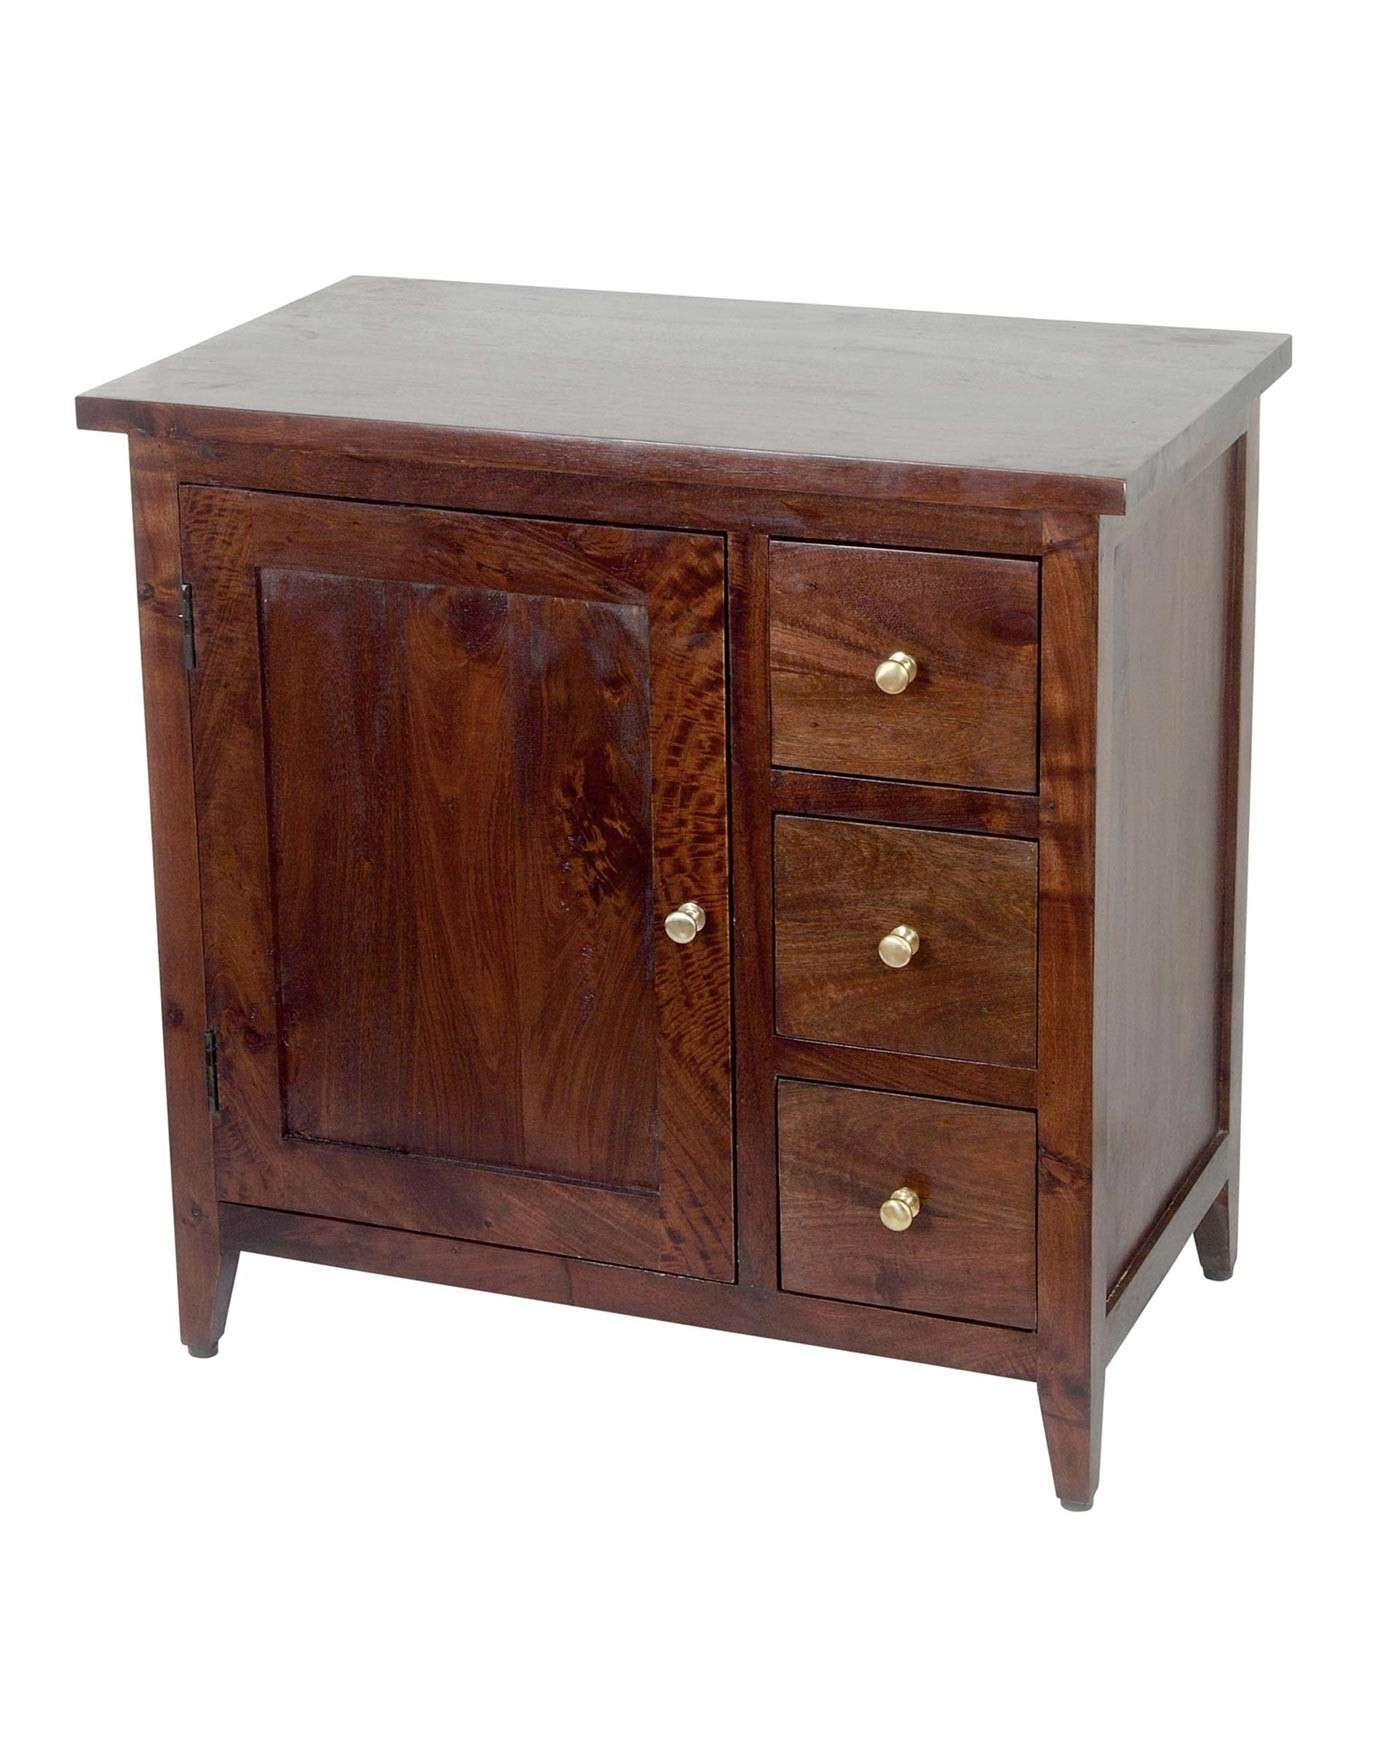 Groove Dark Shade Solid Mango Wood Small Sideboard With Drawers Intended For Small Dark Wood Sideboards (Gallery 1 of 20)